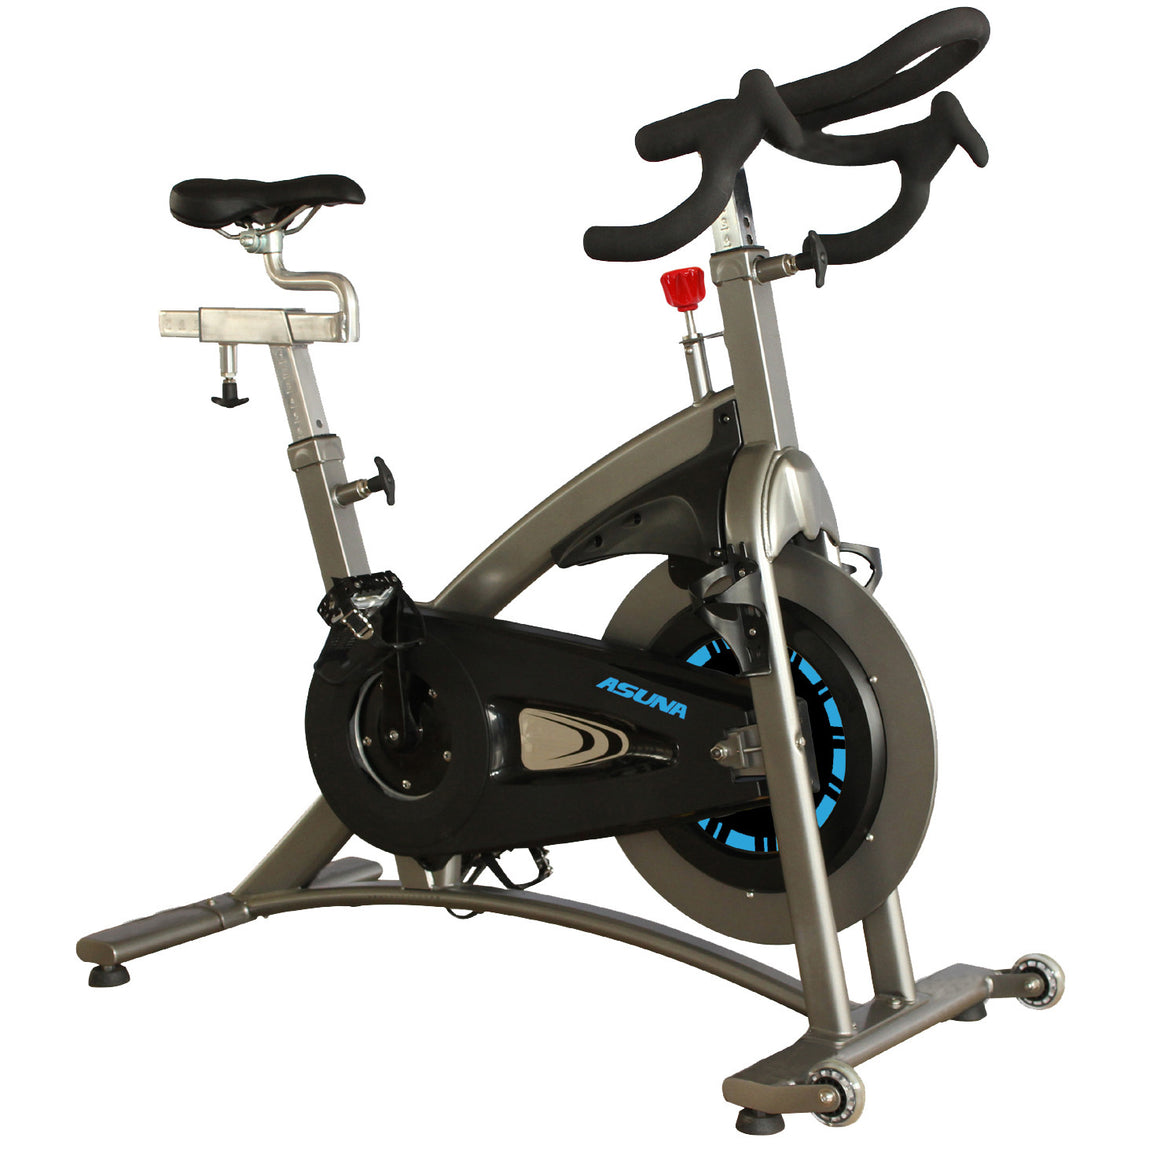 Asuna 5100 Magnetic Belt Drive Commercial Indoor Cycling Bike - Indoor Cyclery